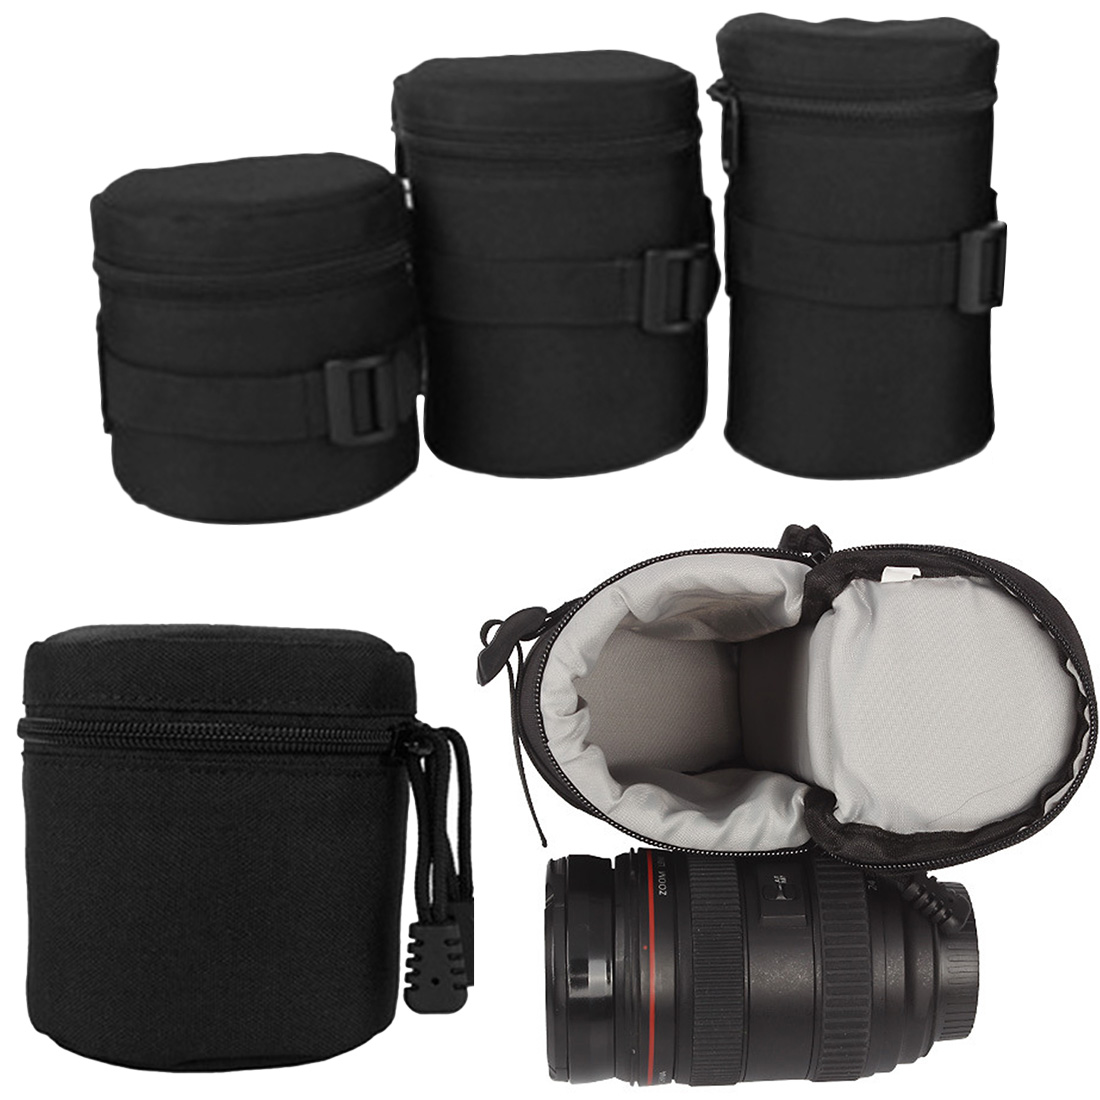 For DSLR Nikon Canon Sony Lenses High Quality Black Waterproof Padded Protector Camera Lens Bag Case Pouch Size S M L